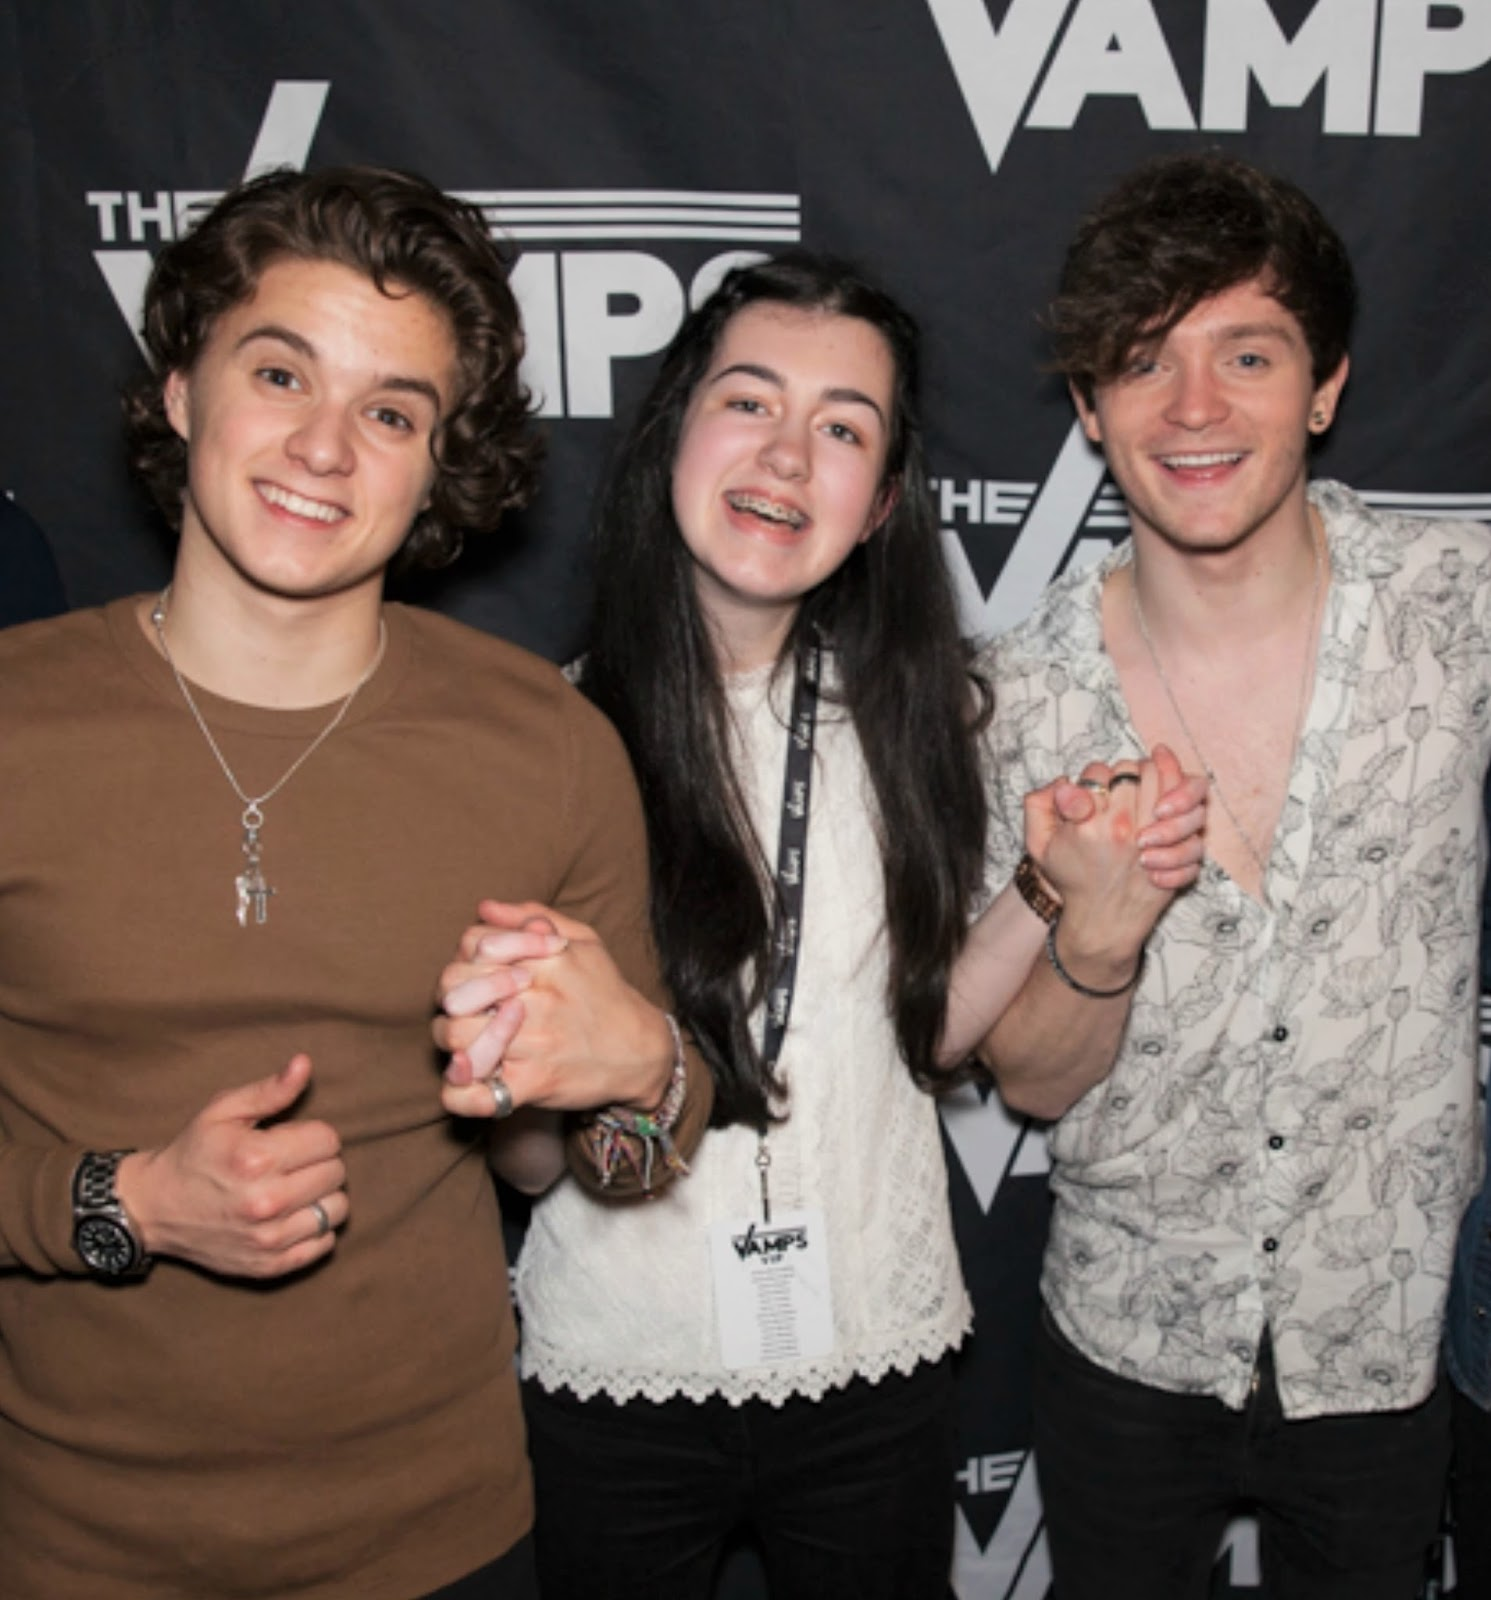 The vamps wake up tour meet and greet concert everything erin ive done the meet and greet twice now and ive loved it both times but im not sure ill do it again next time unless i got a lot more time with them m4hsunfo